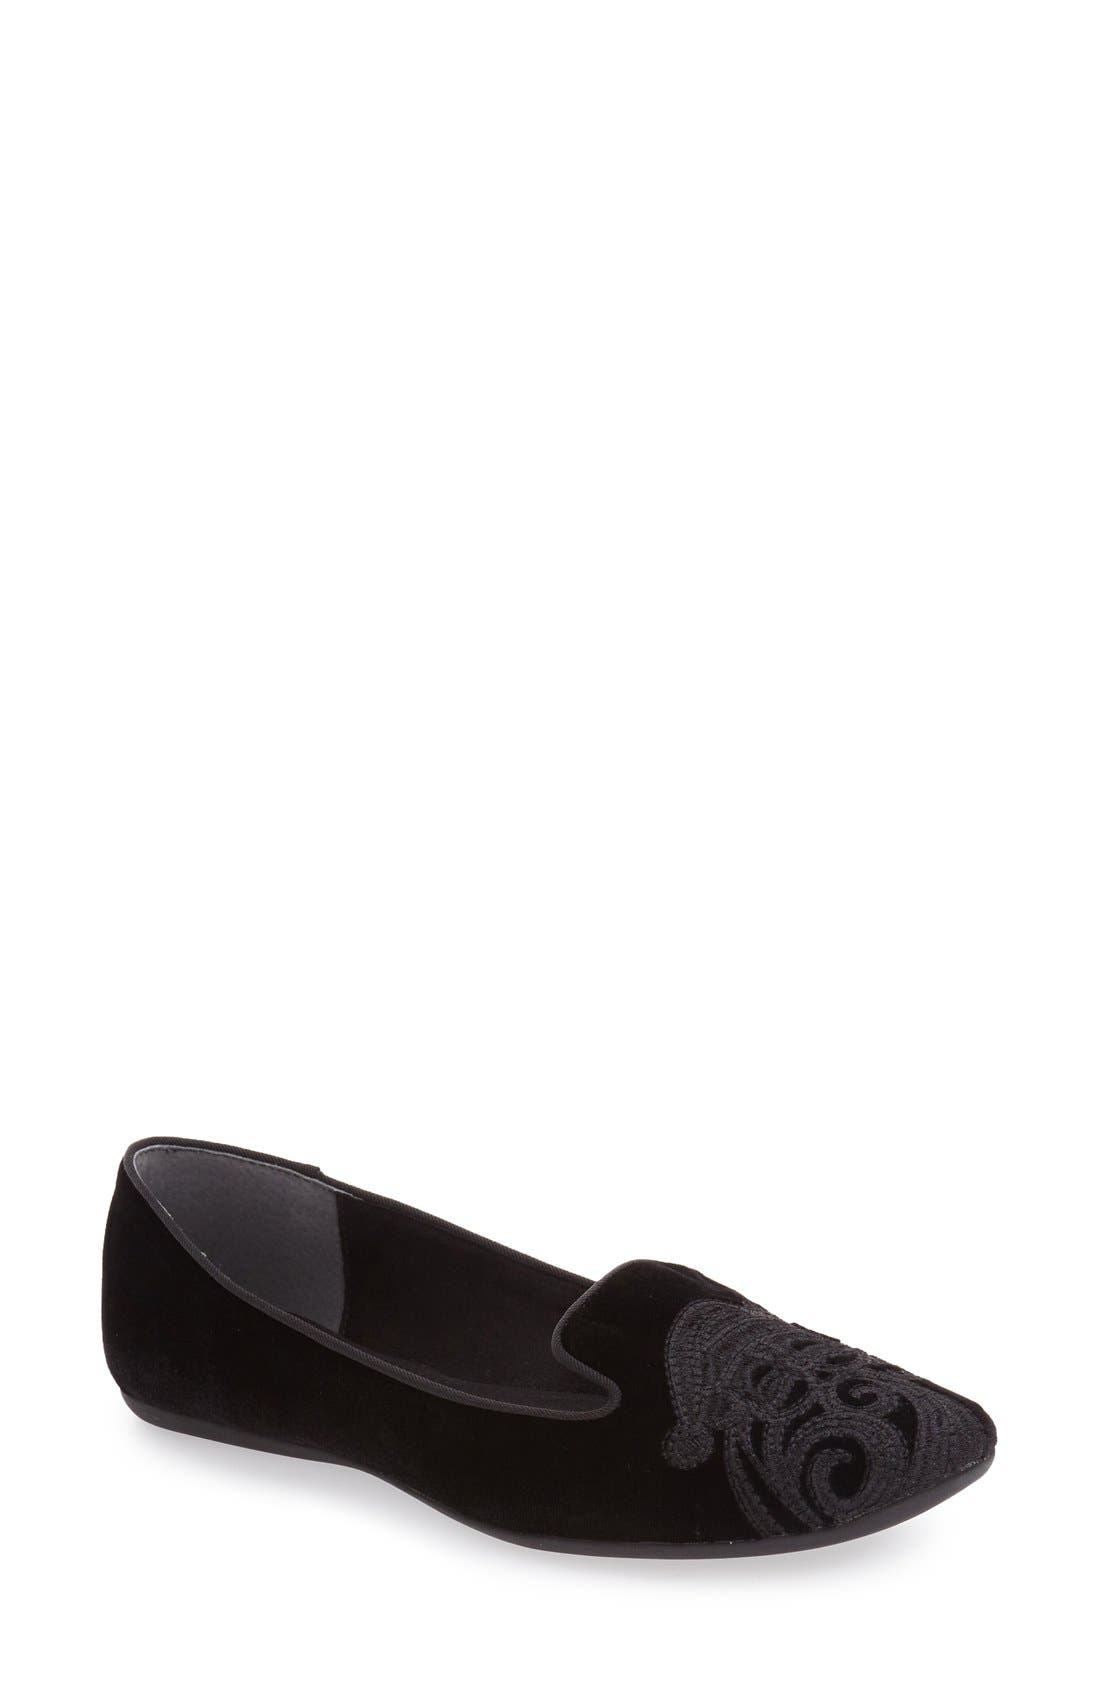 J. RENEÉ 'Slipsleigh' Santa Embroidered Loafer